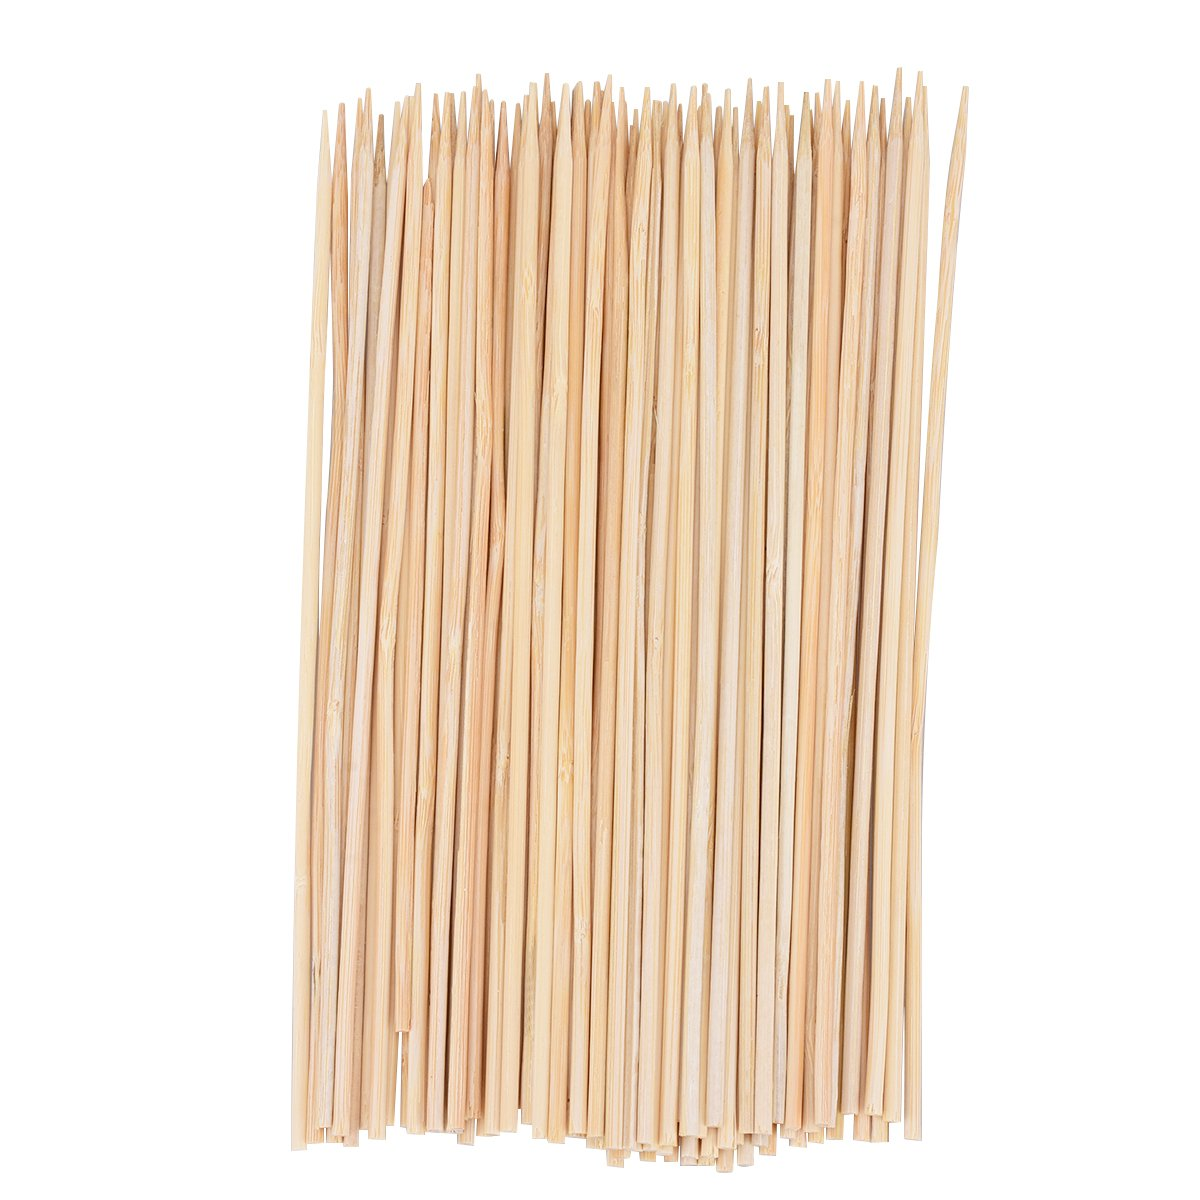 Bamboo Skewers Sticks 8 Inches 3mm Thick for BBQ, Apetizers, Grilling, or Fondue, TankerStreet BBQ Skewers Veggie Fruit Sticks,Wooden Dowels for Craft, About 100 Pieces Pack